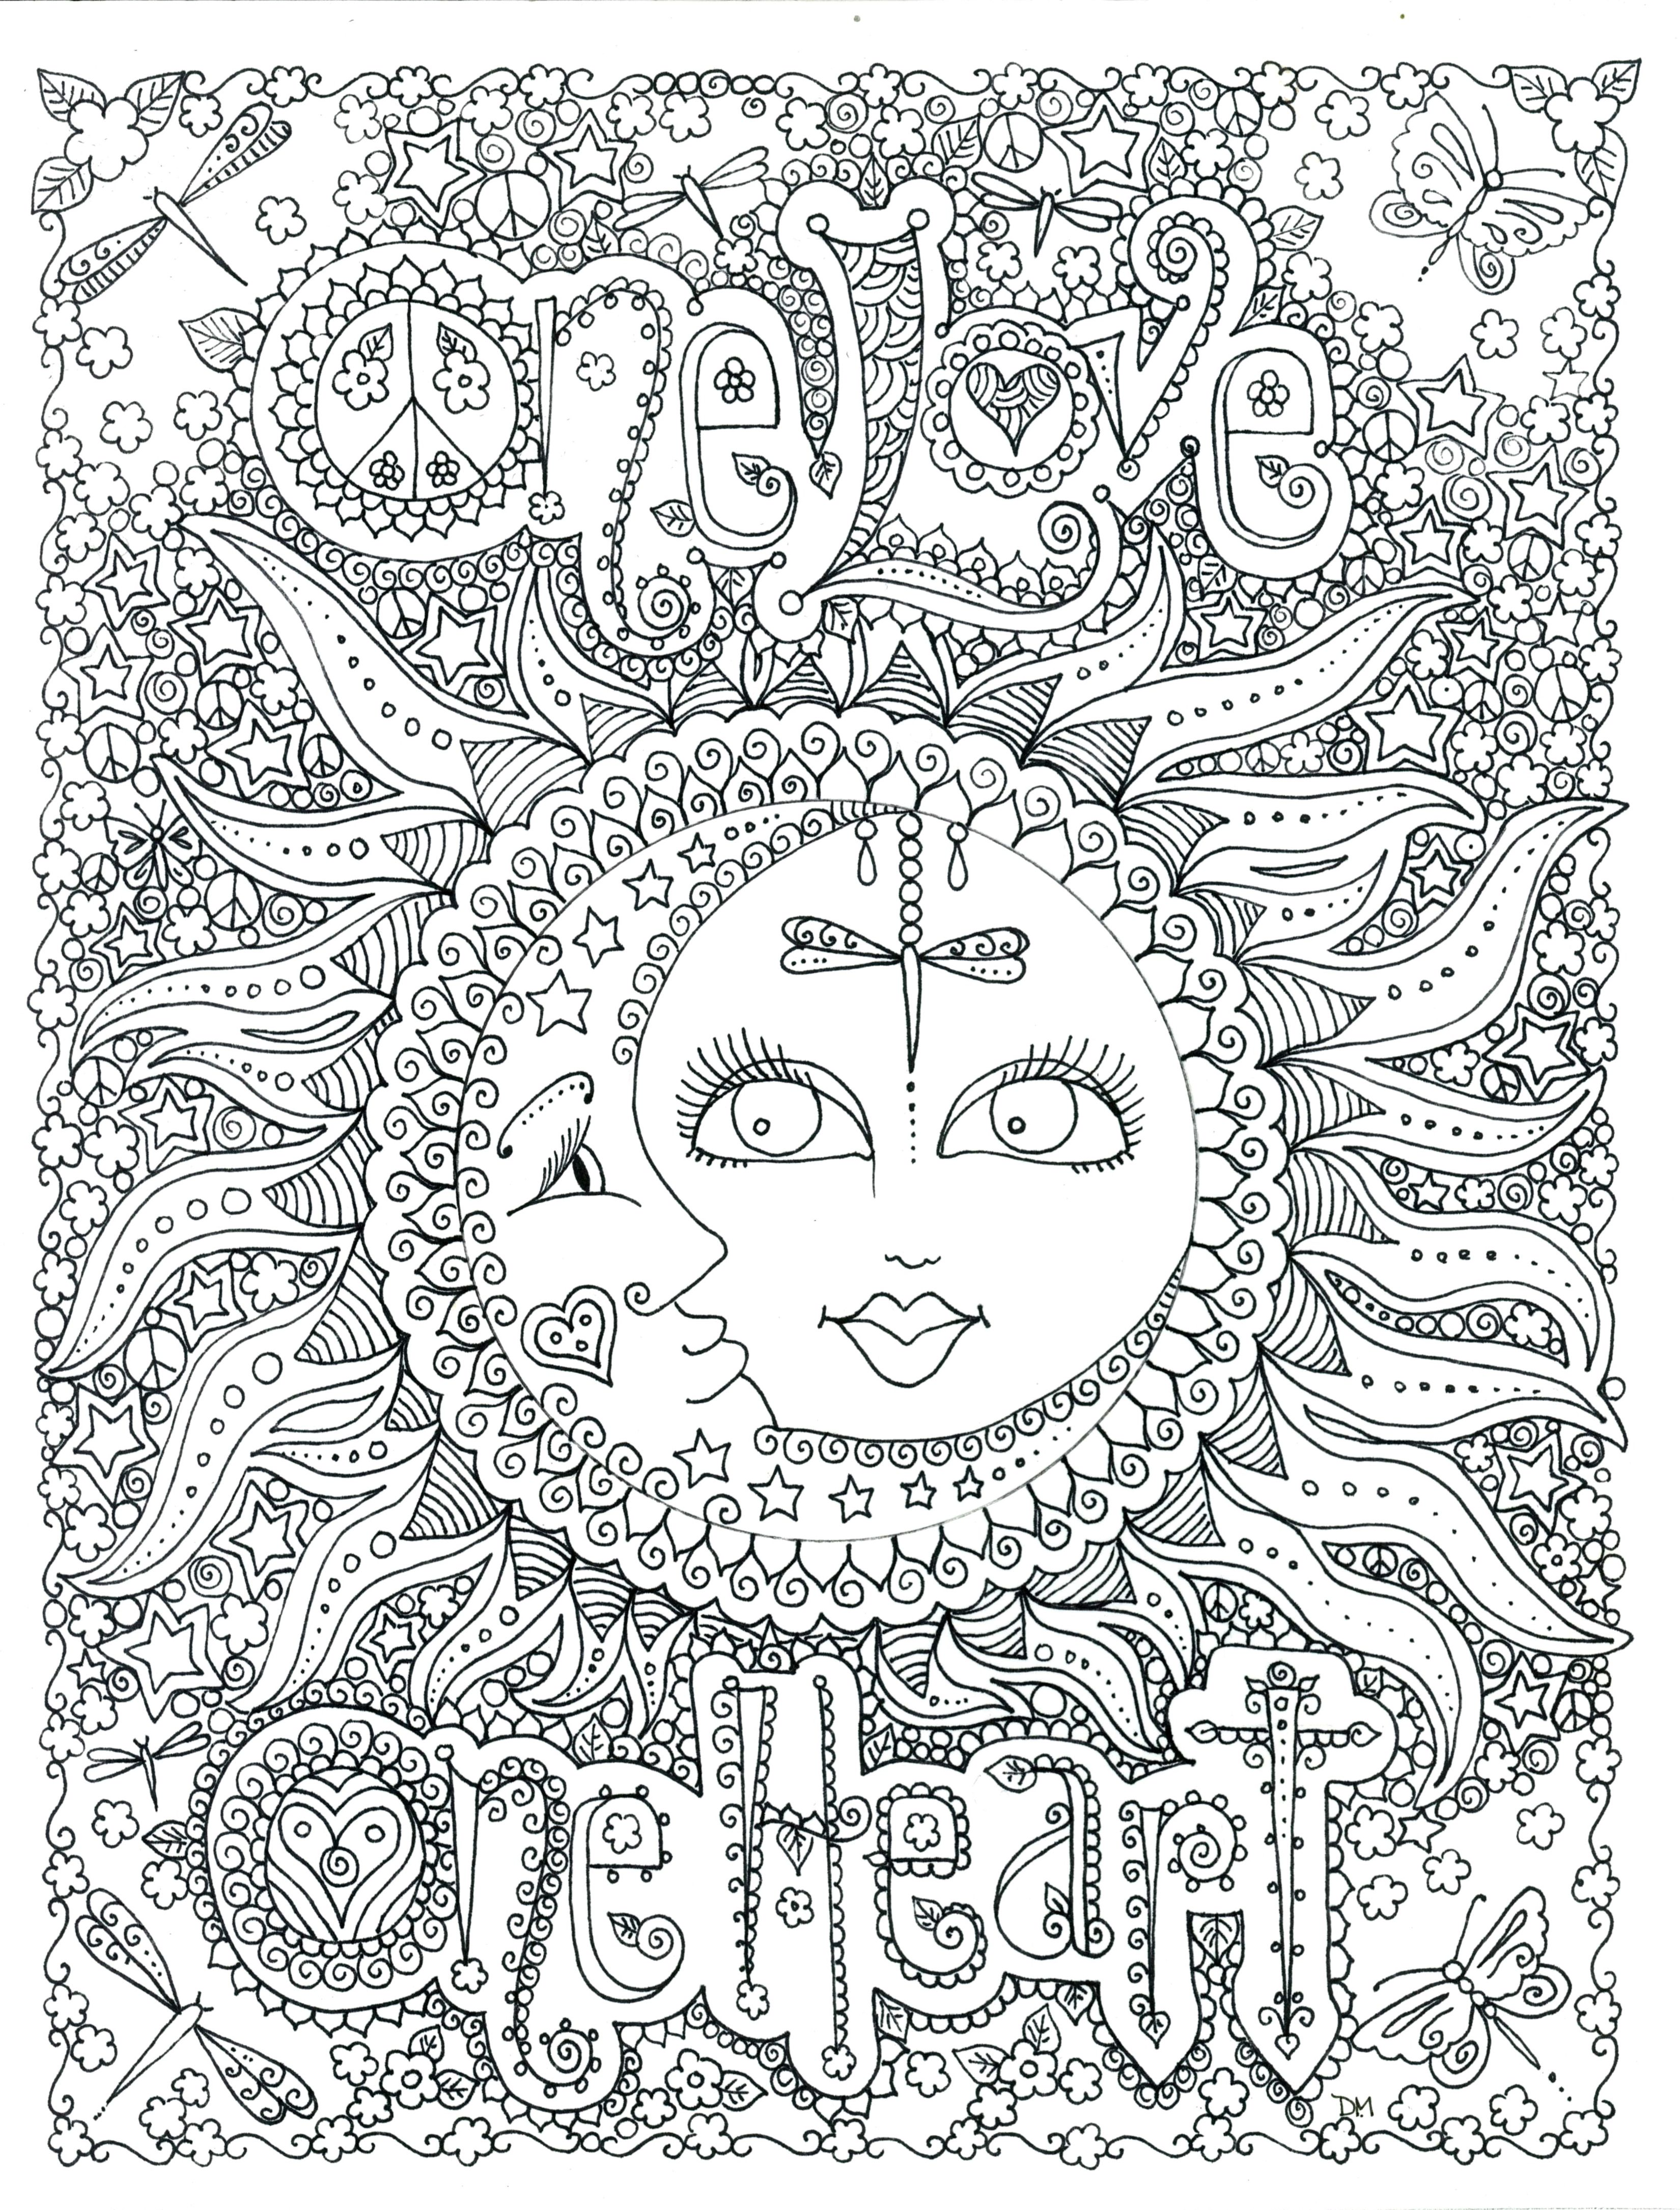 One Love Poster by Chubby Mermaid on Etsy.com | adult ...